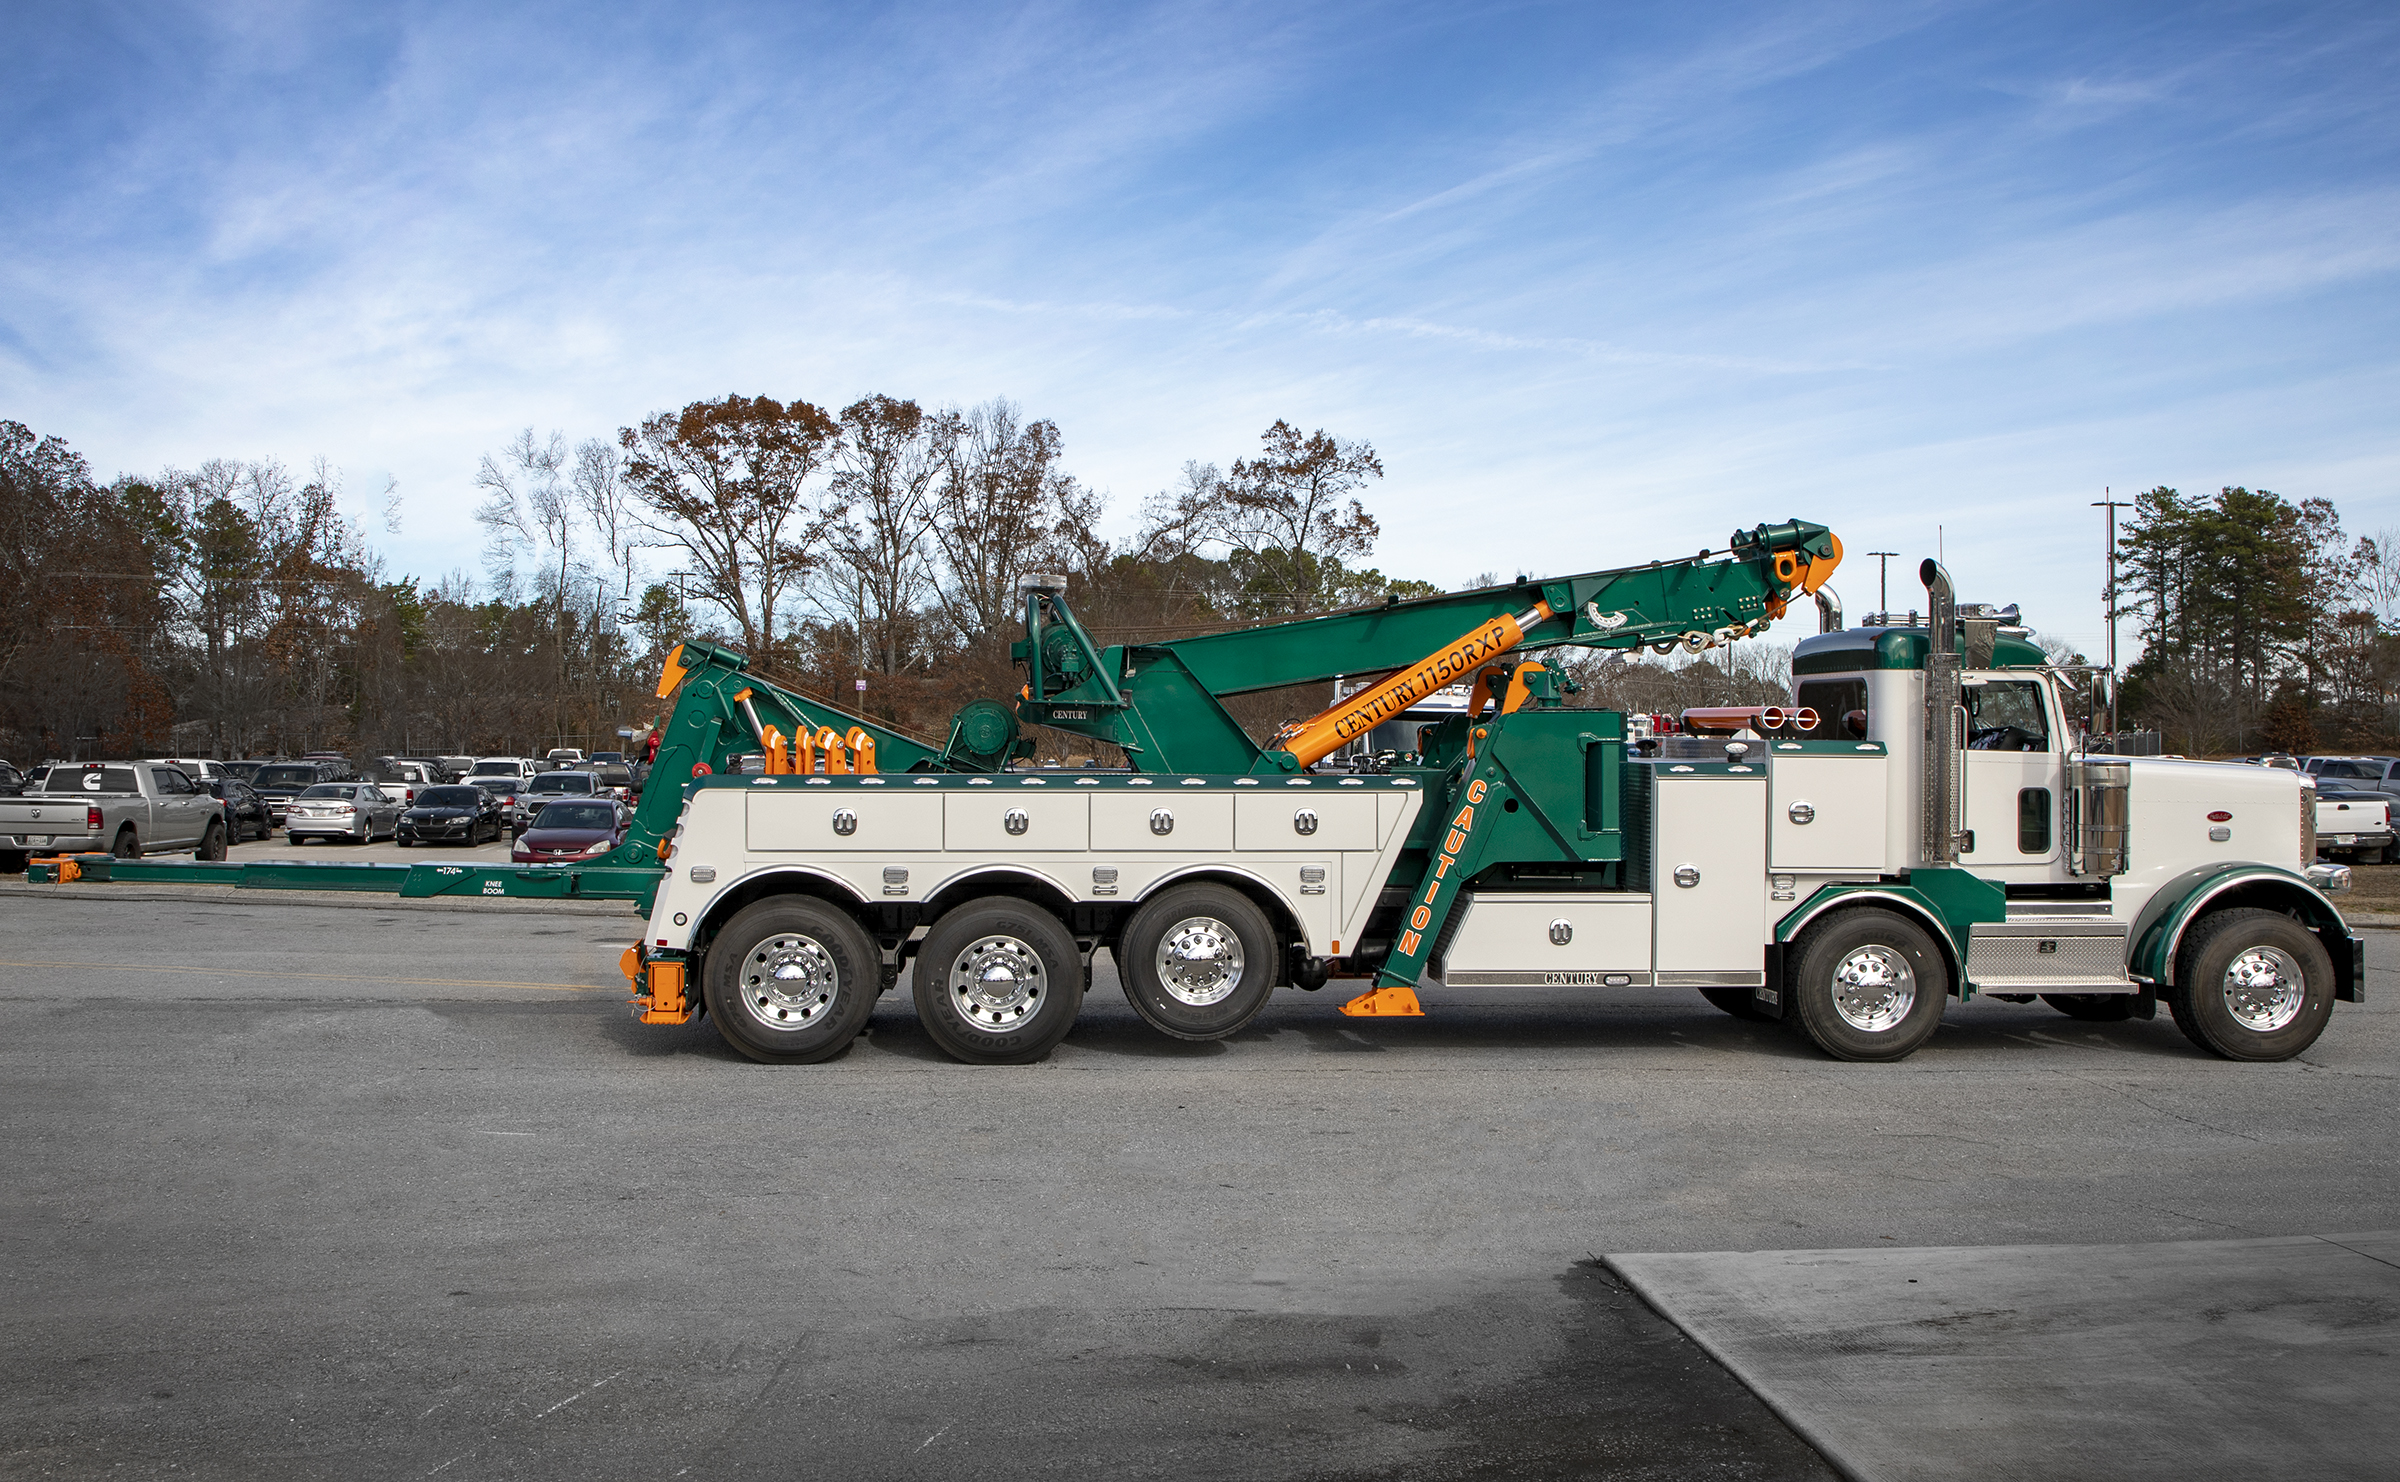 Century® 1150 Rotator can be outfitted with the kneeboom underlift for superior heavy-duty towing